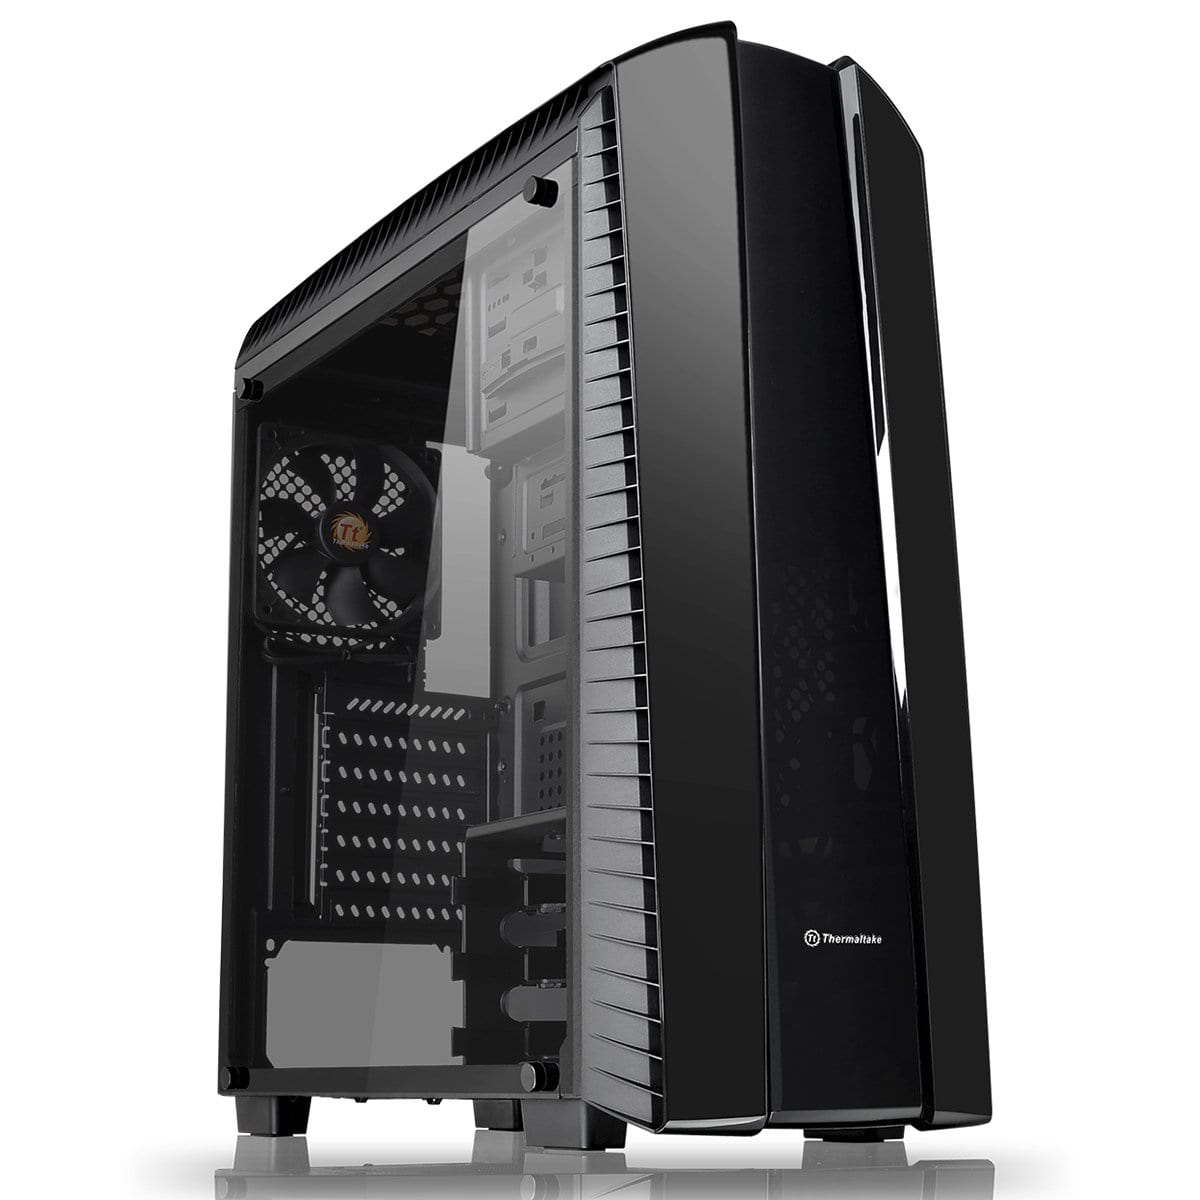 Best Gaming PC Build Under Rs. 70,000: December 2019